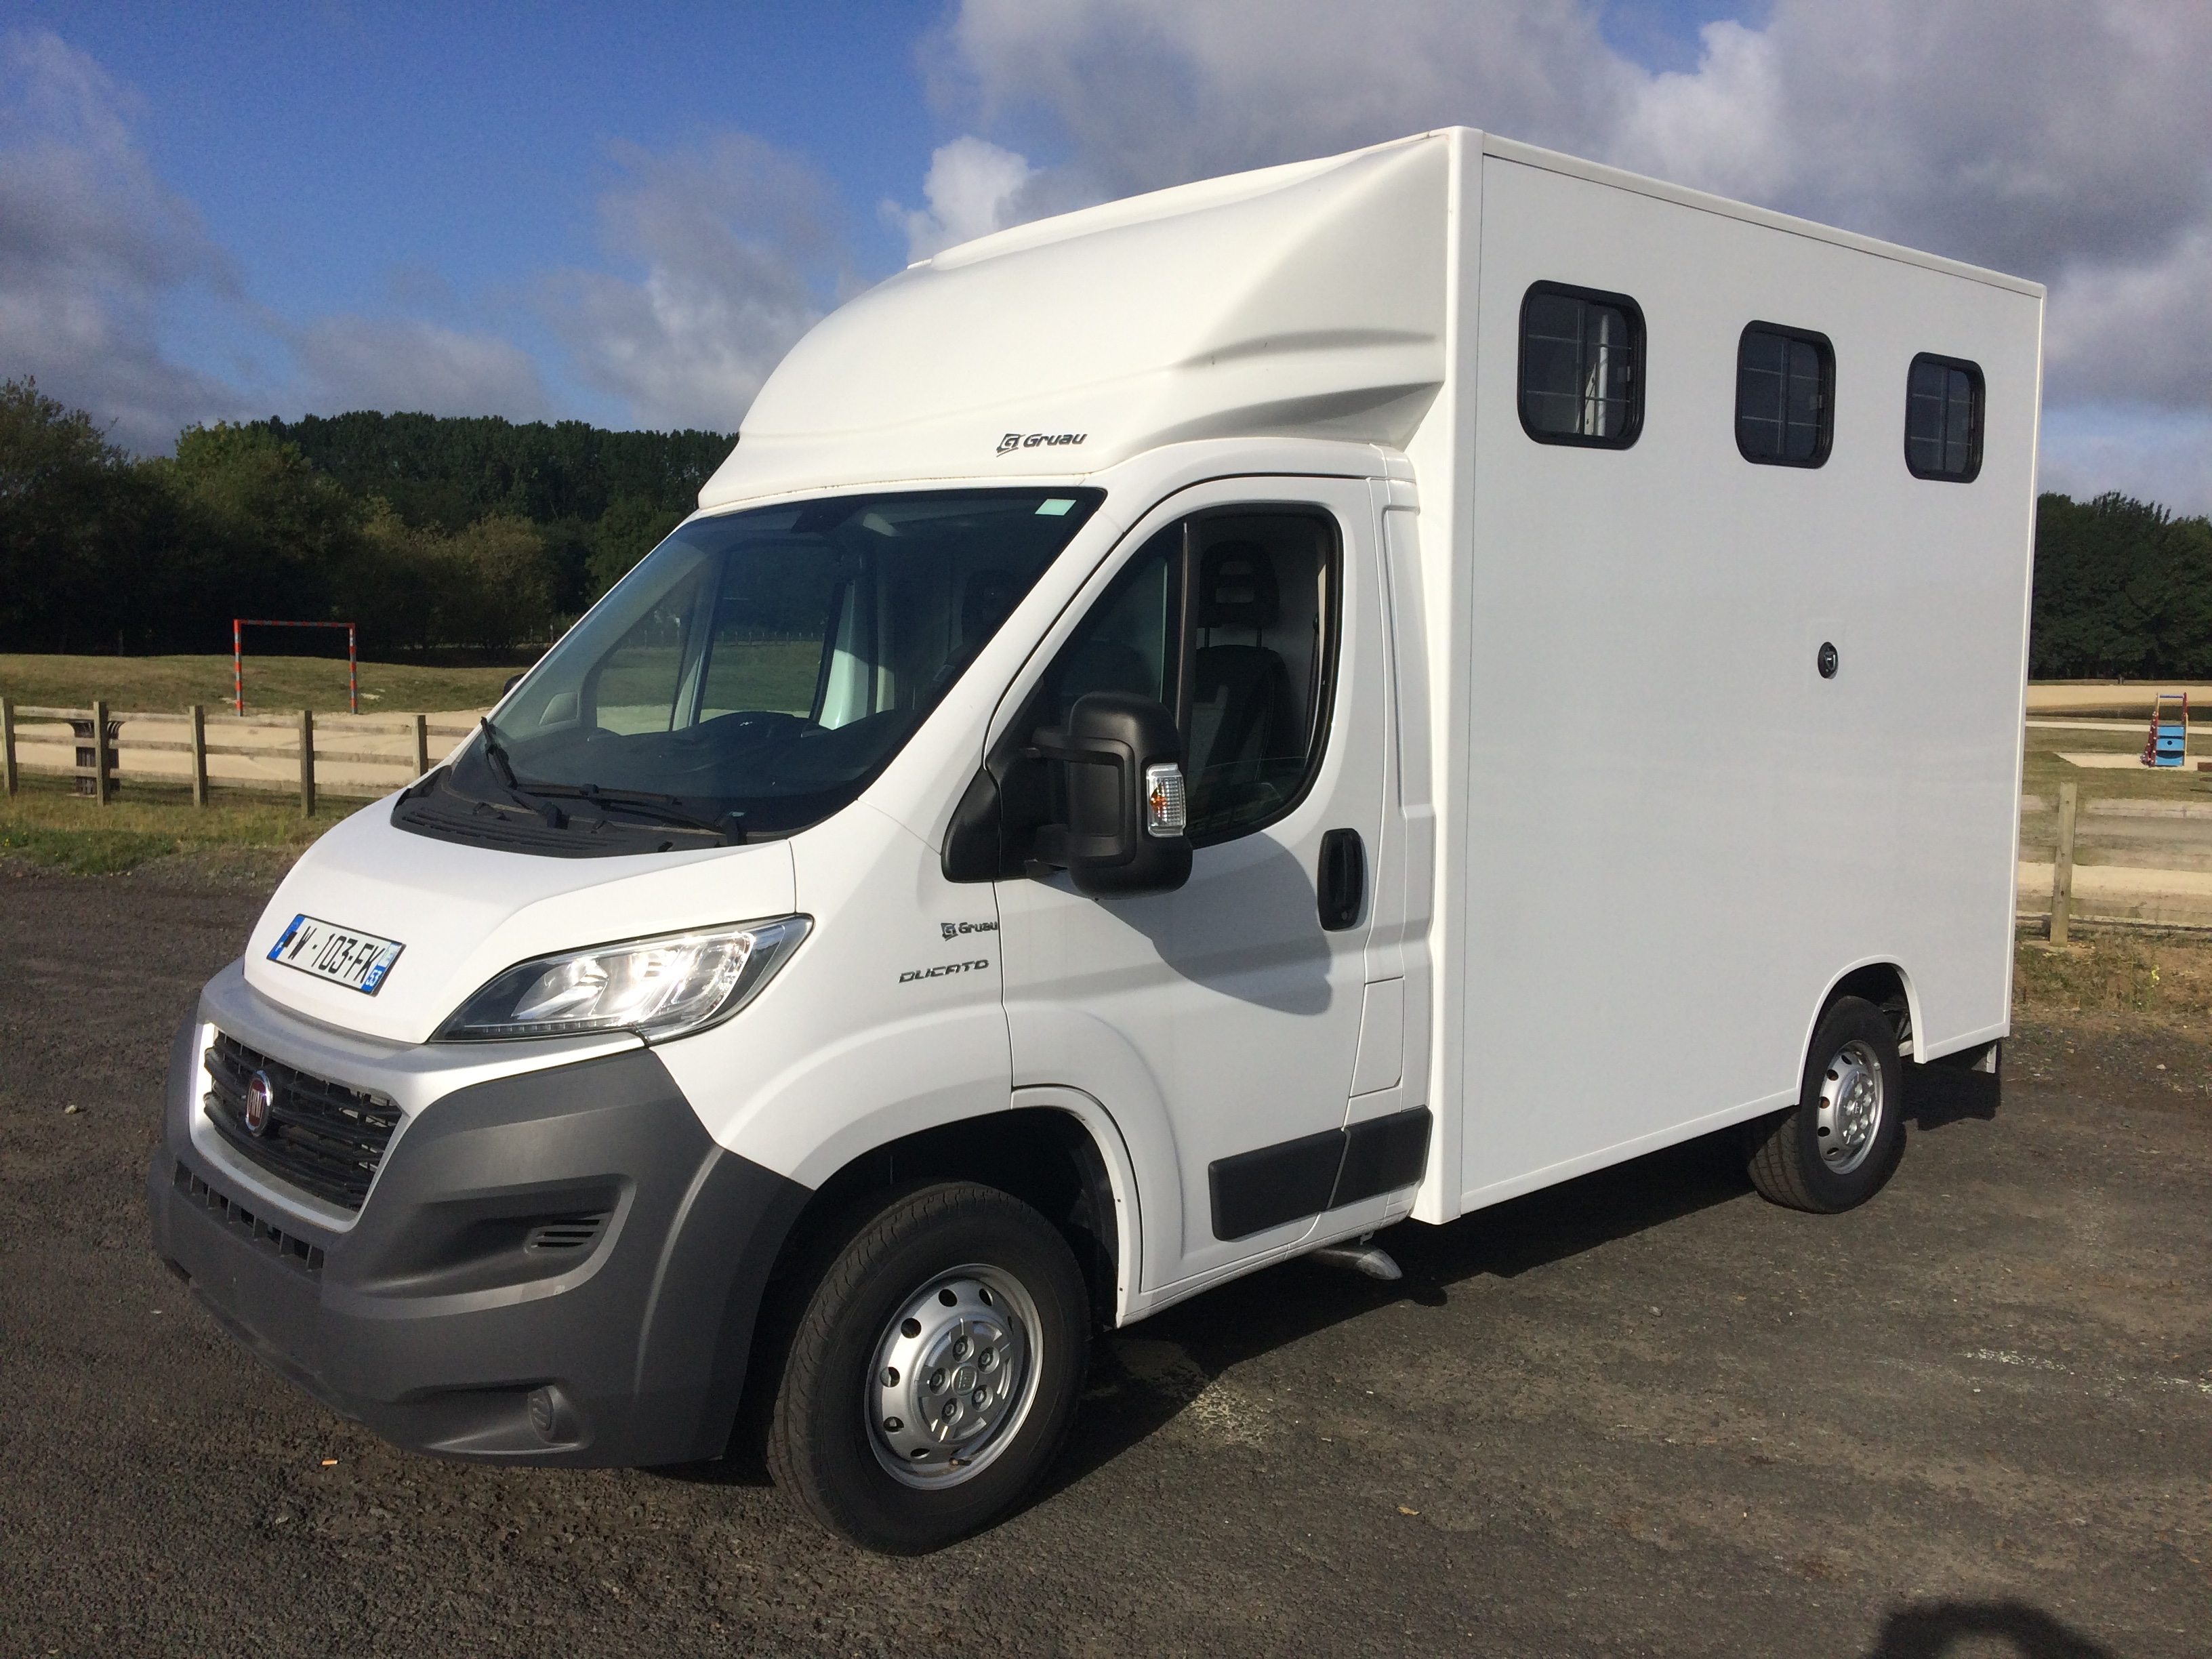 utilitaire fiat ducato pack pro 150 cv d 39 occasion 10 kilom tres diesel benne plateau. Black Bedroom Furniture Sets. Home Design Ideas